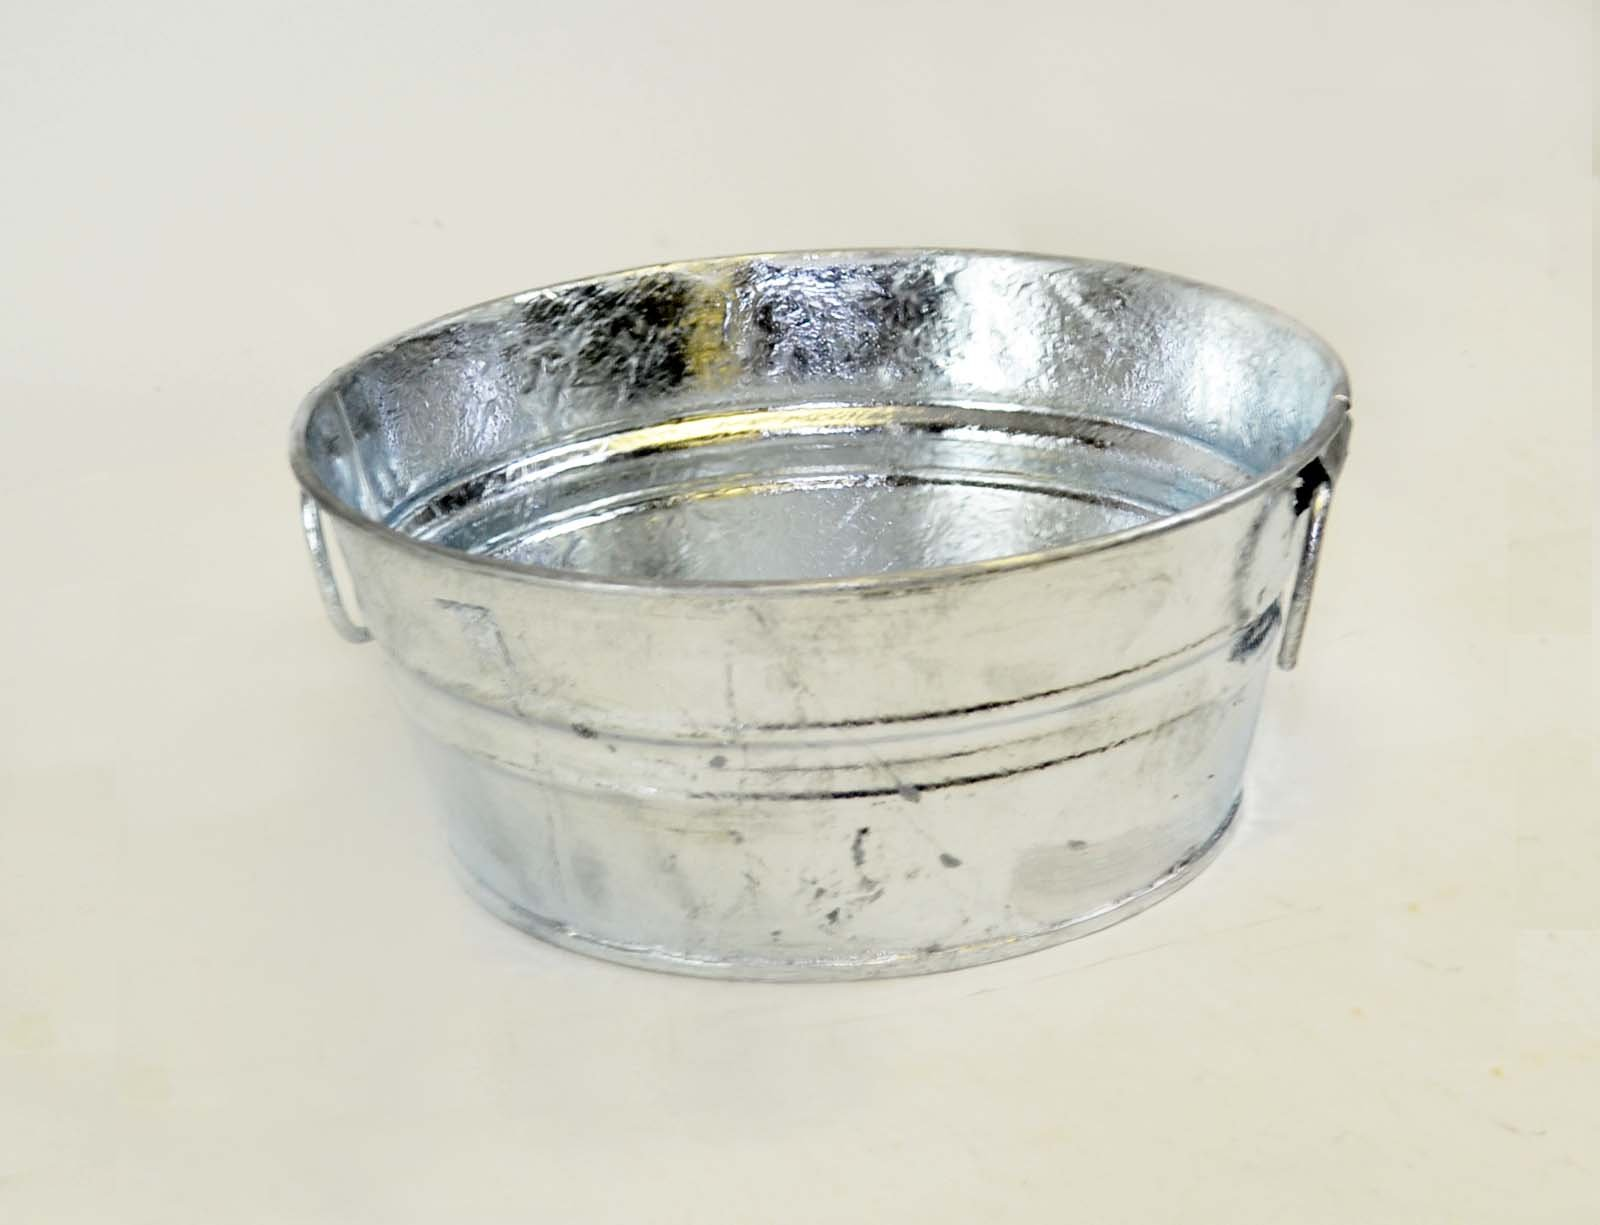 1.32 Gallon Galvanized Wash Tub with Handles-4.5 inches High x 10.5 inches Diameter